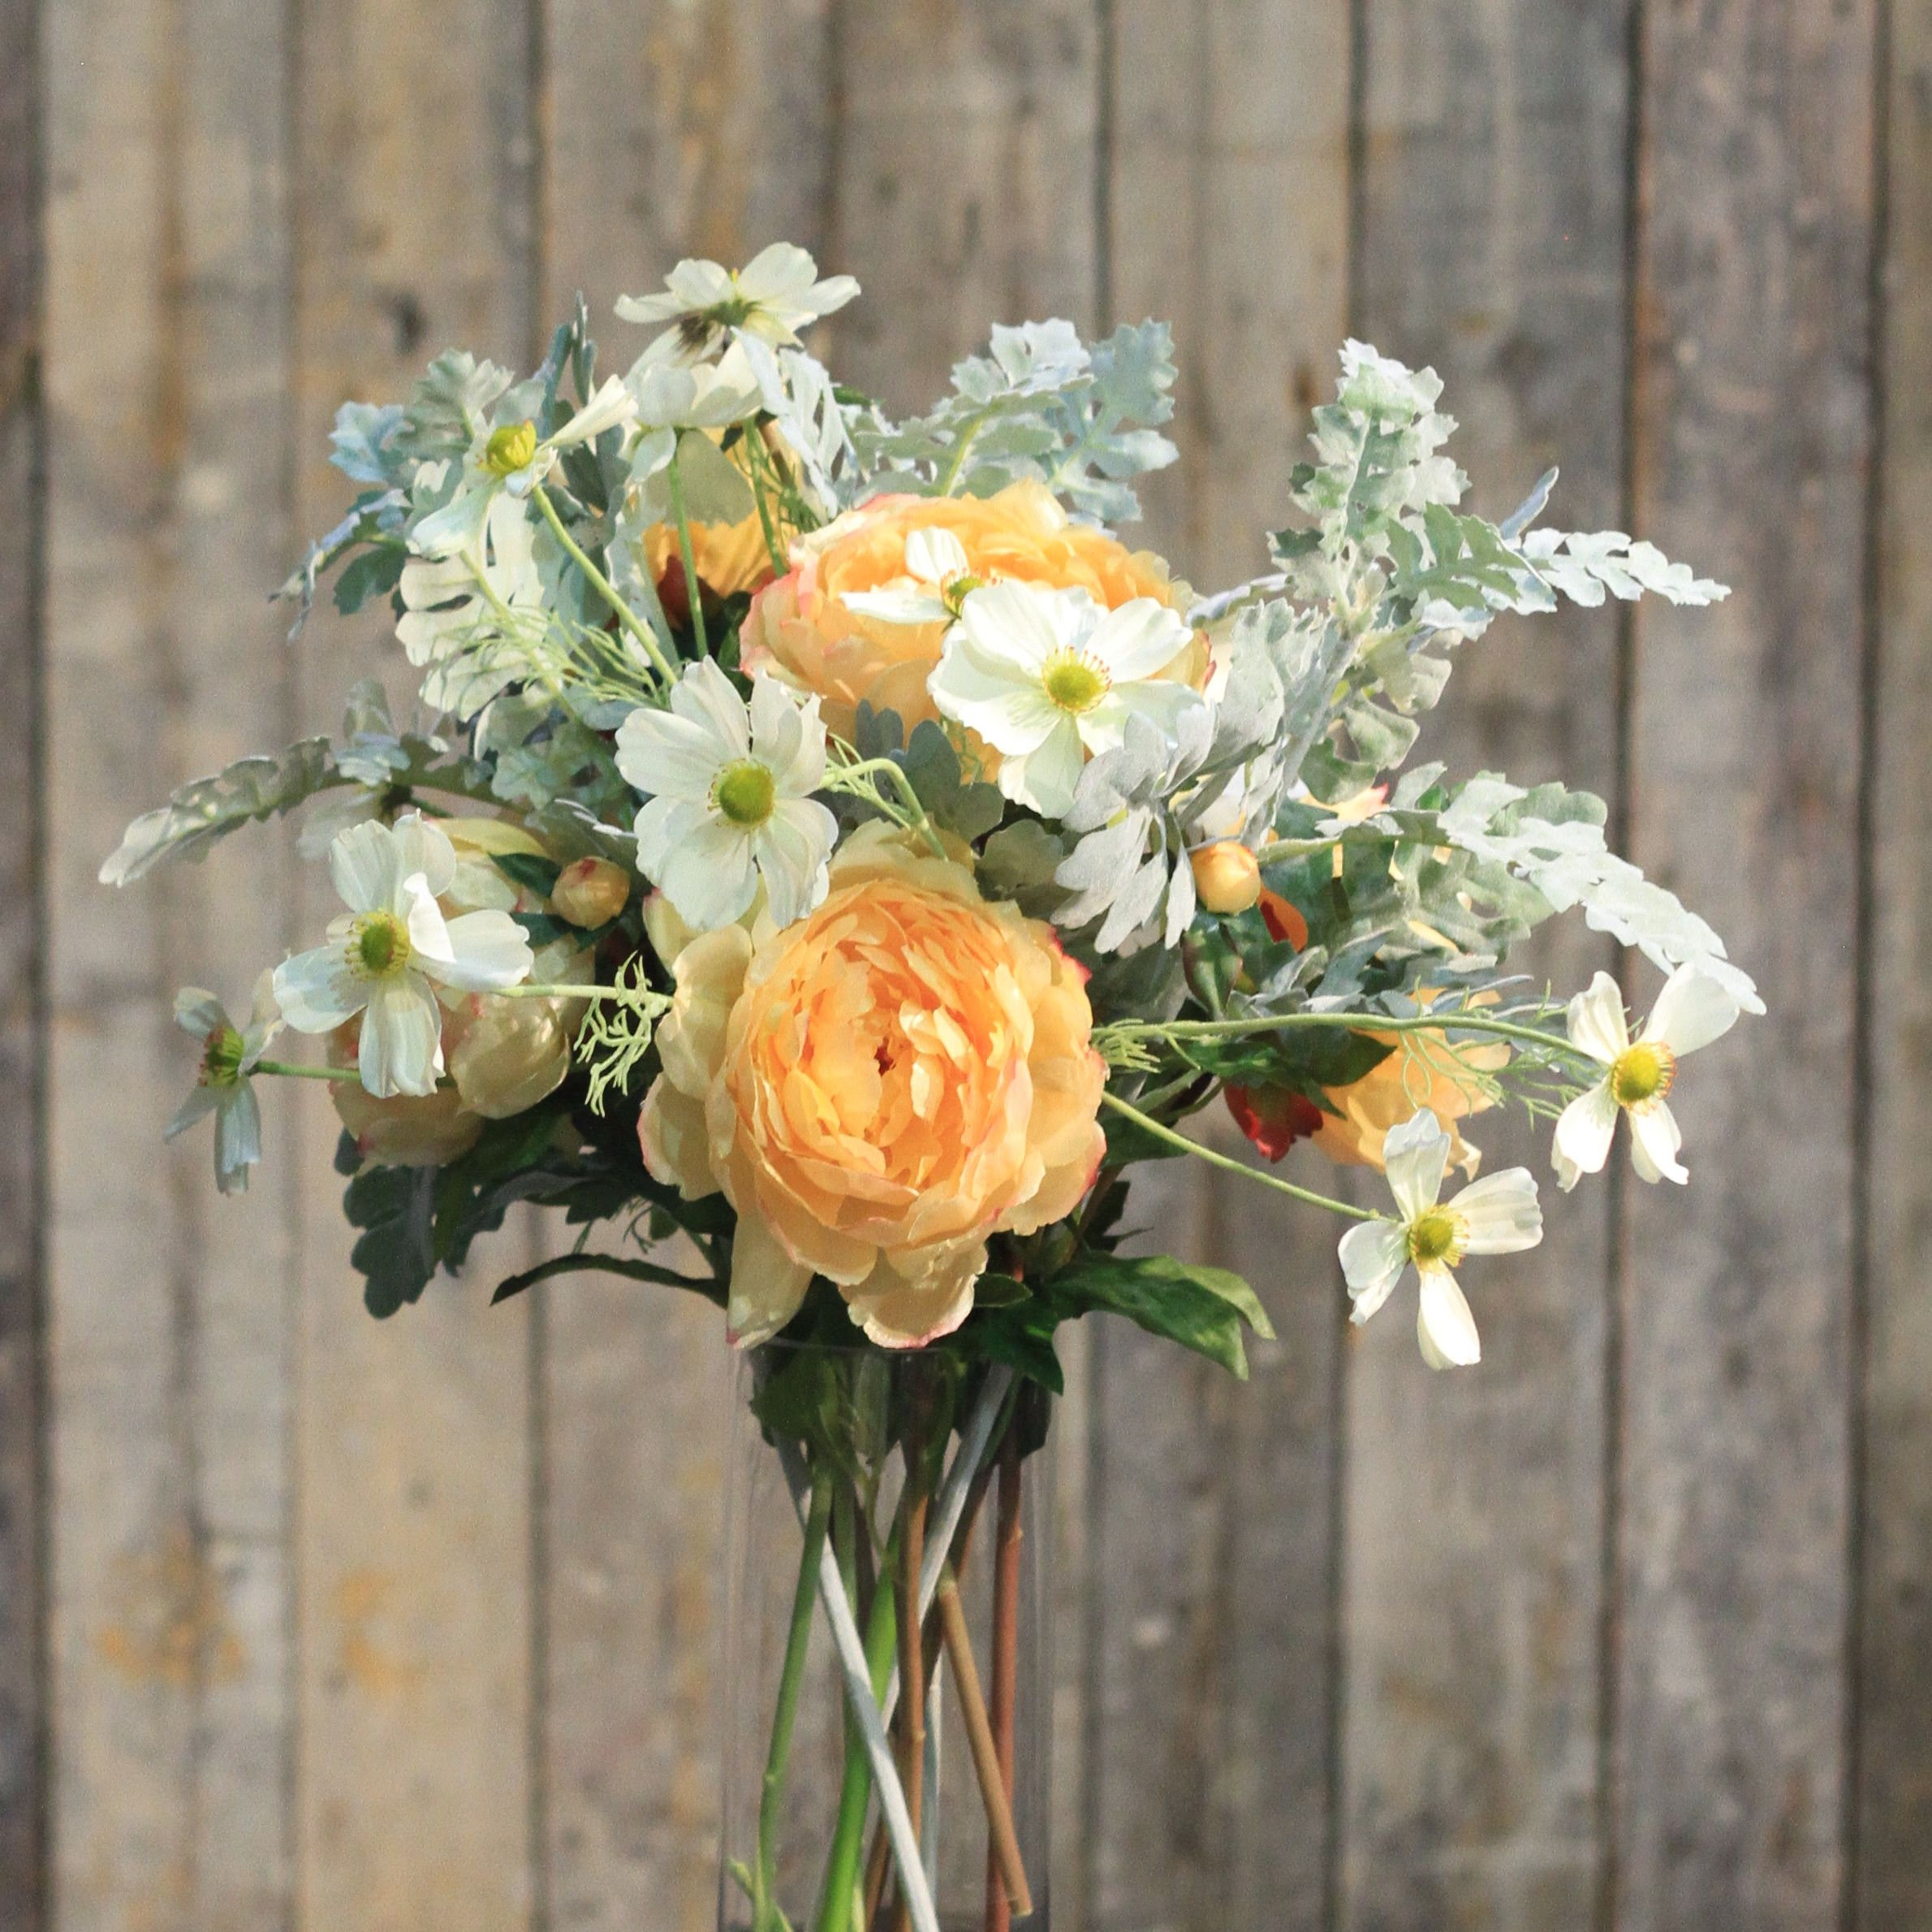 Peach Classic Peony Bunch Of 6 Stems Artificial Peonies Faux